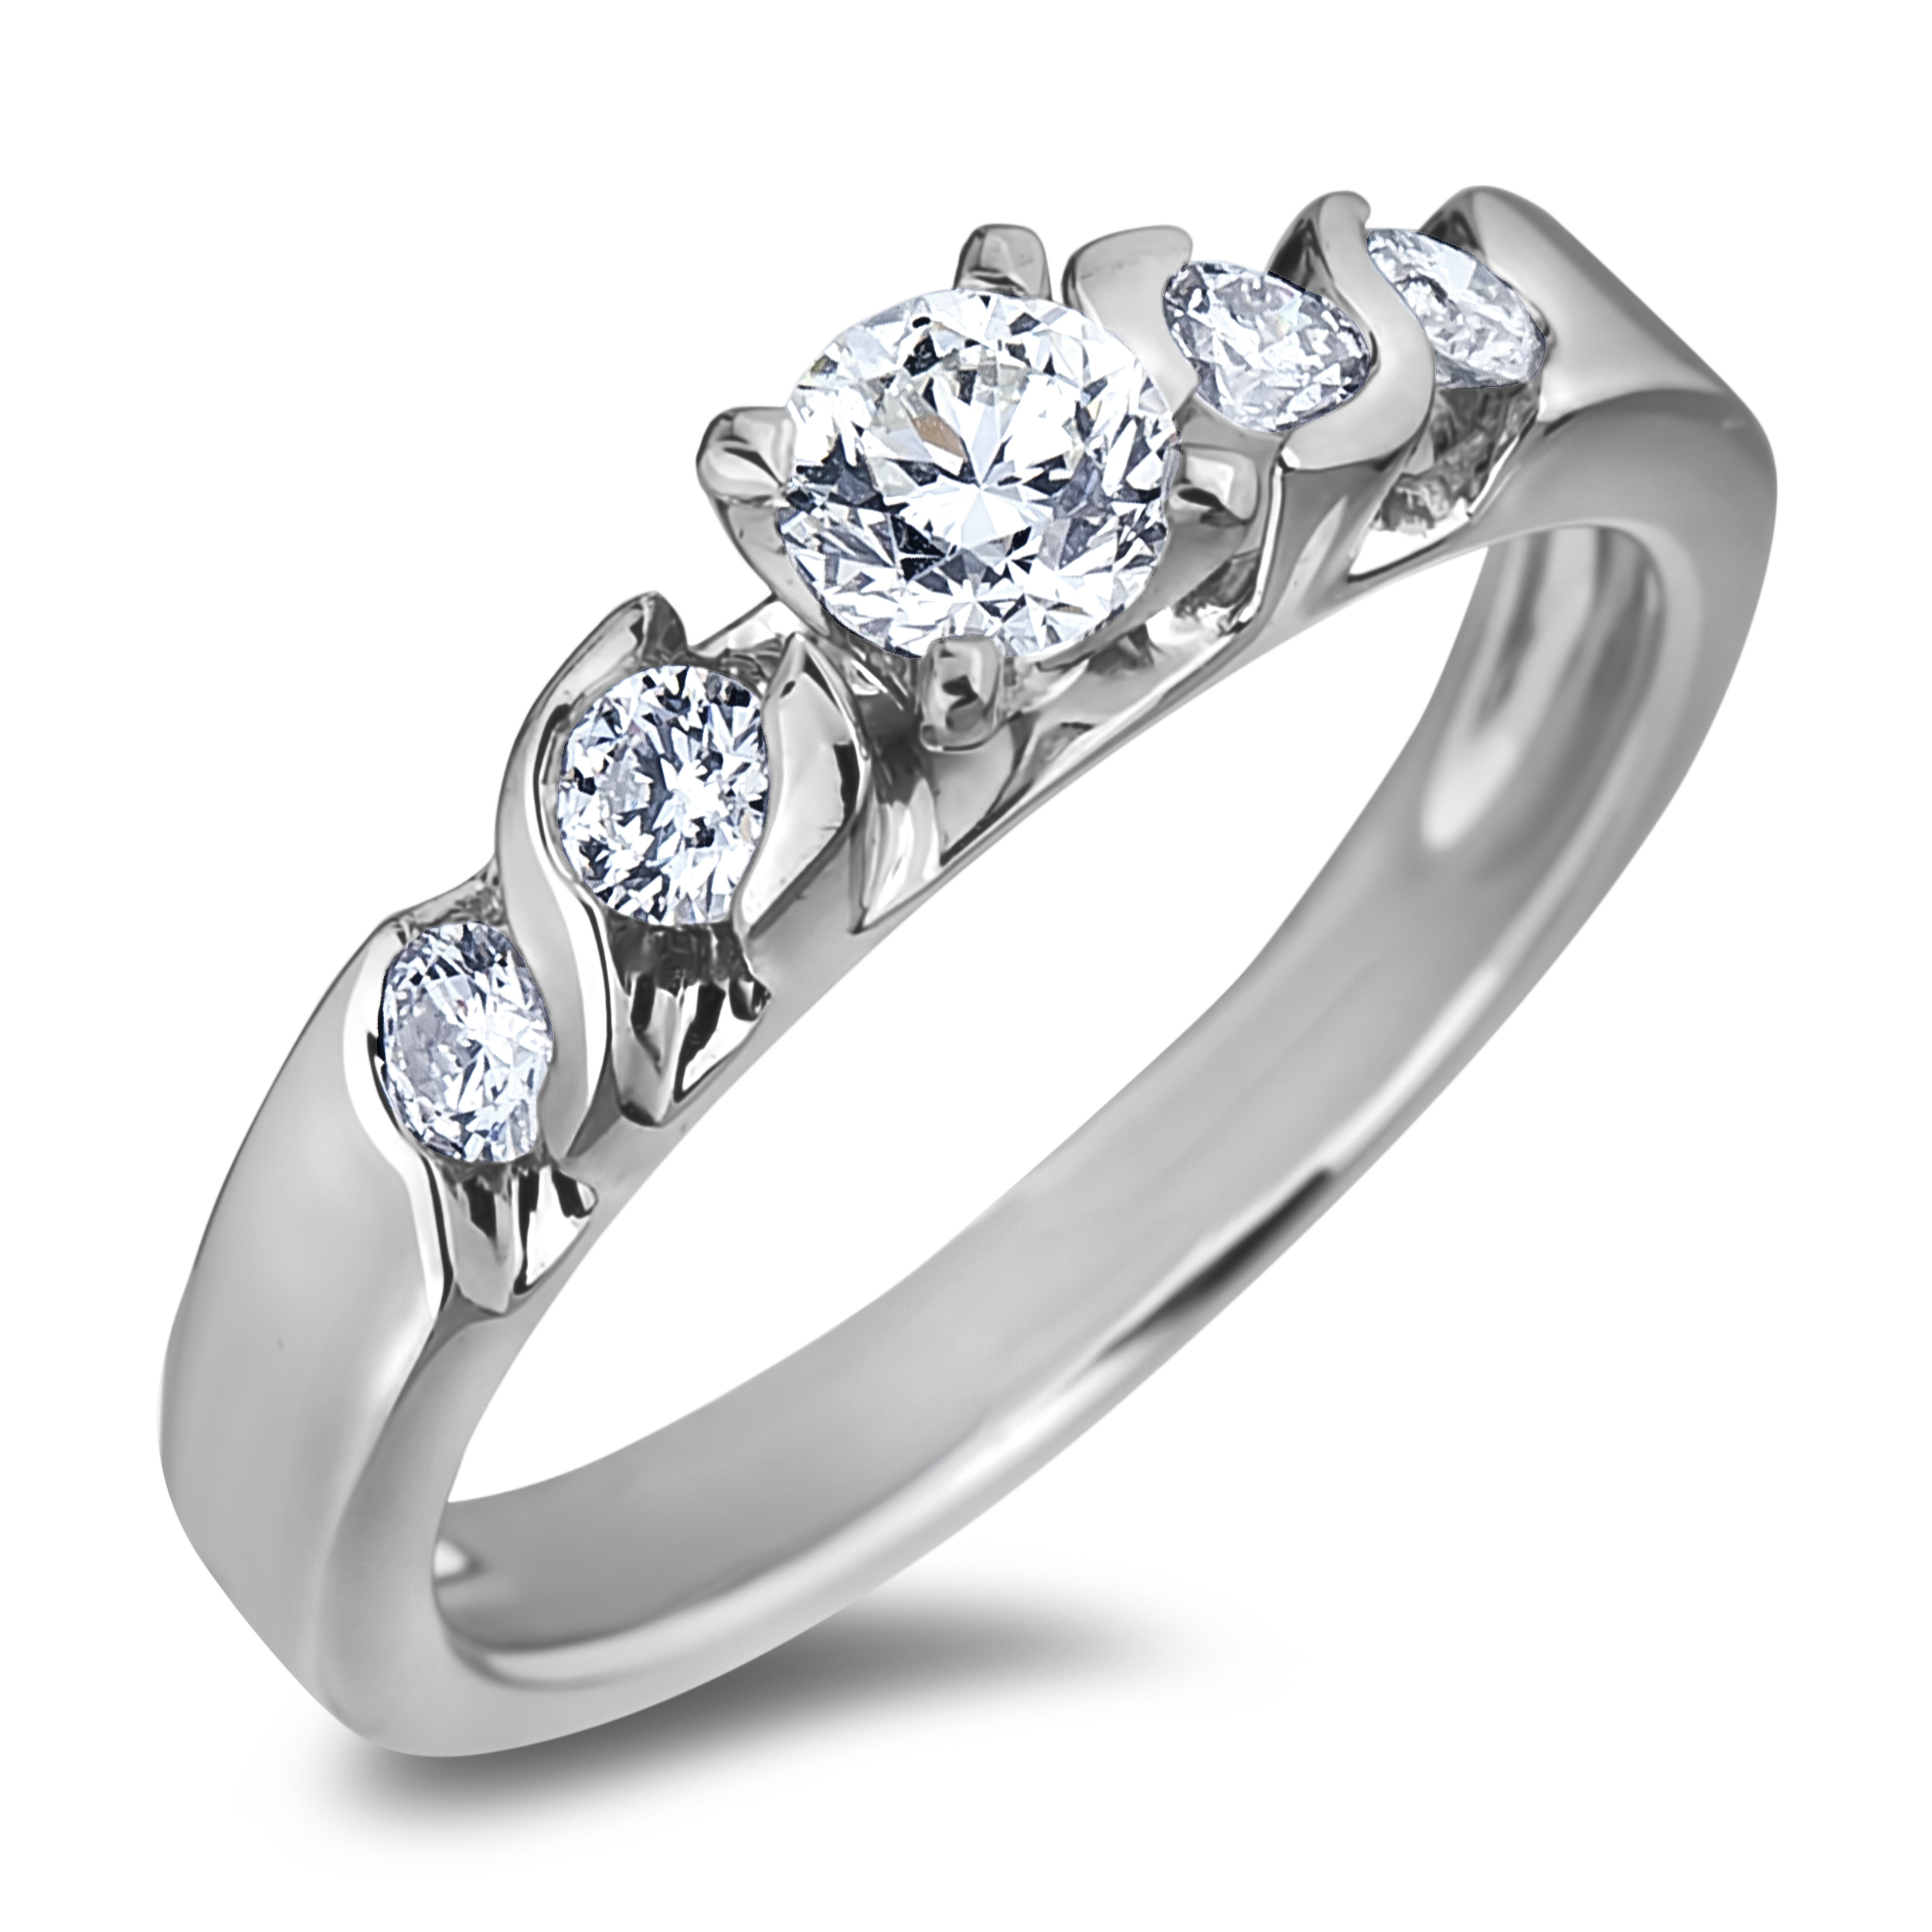 Diamond Engagement Rings SEC2259 (Rings)